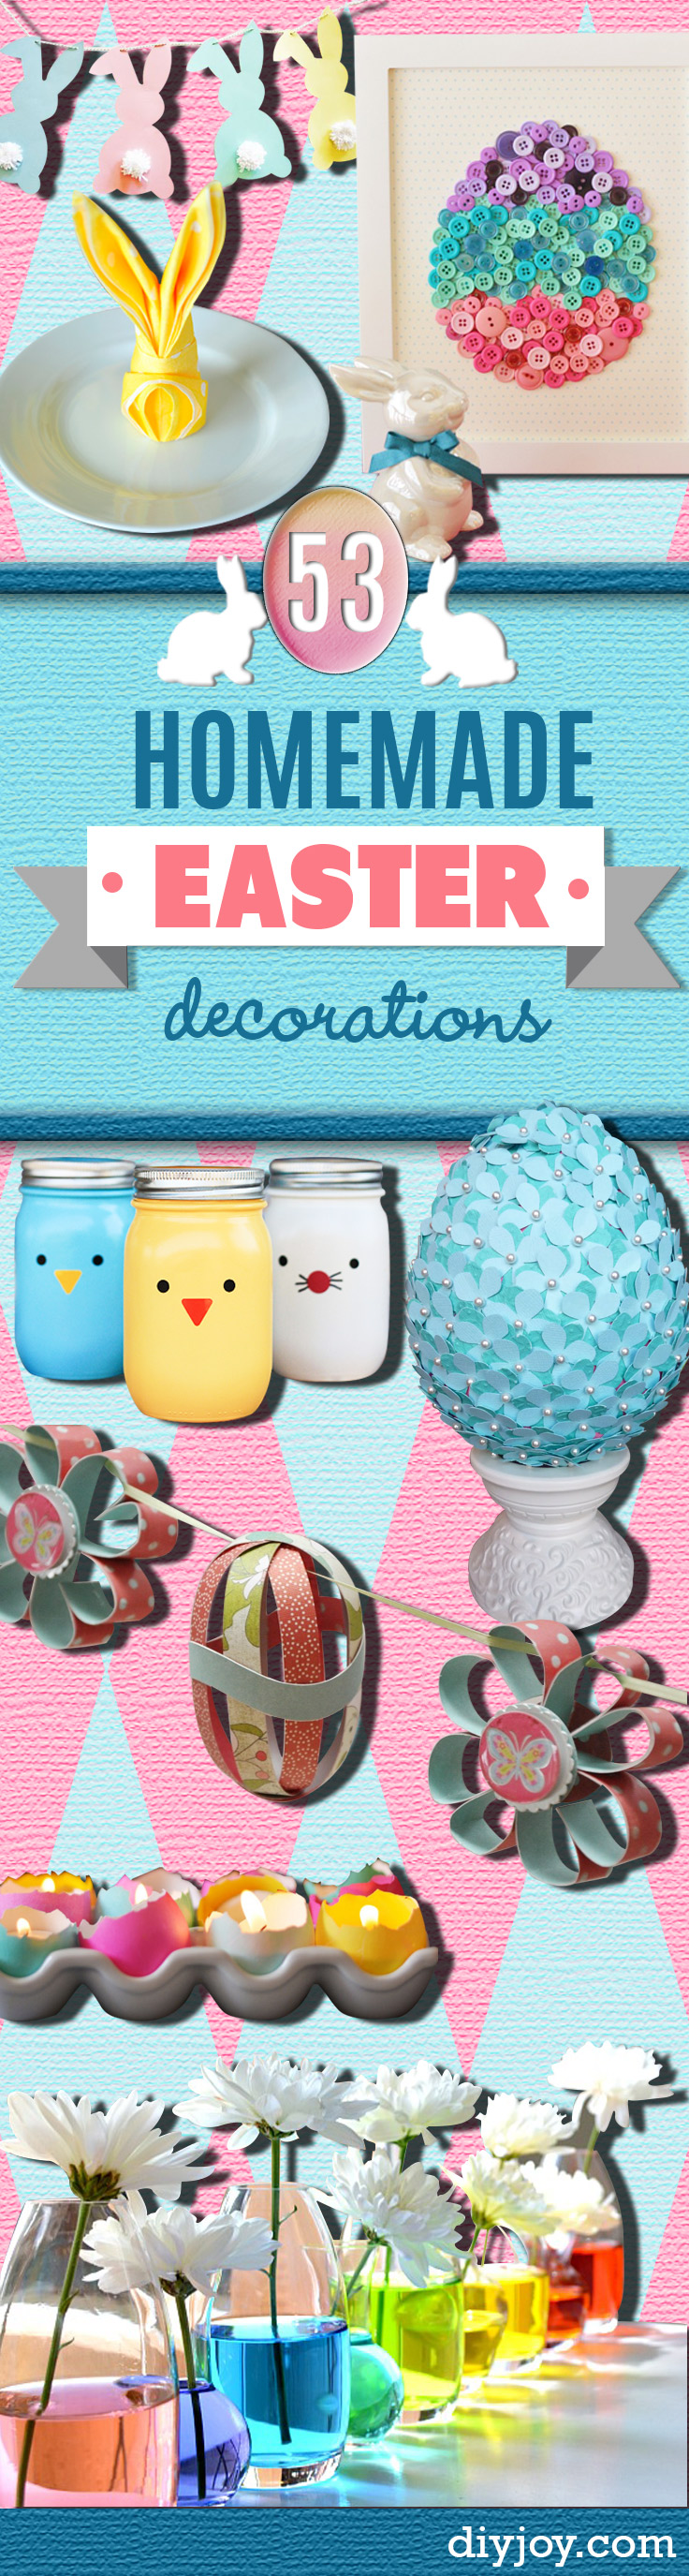 DIY Easter Decorations - Easter Decor Ideas for the Home and Table - Cute Easter Wreaths, Cheap and Easy Dollar Store Crafts for Kids. Rustic Centerpieces and Mantel Decorations